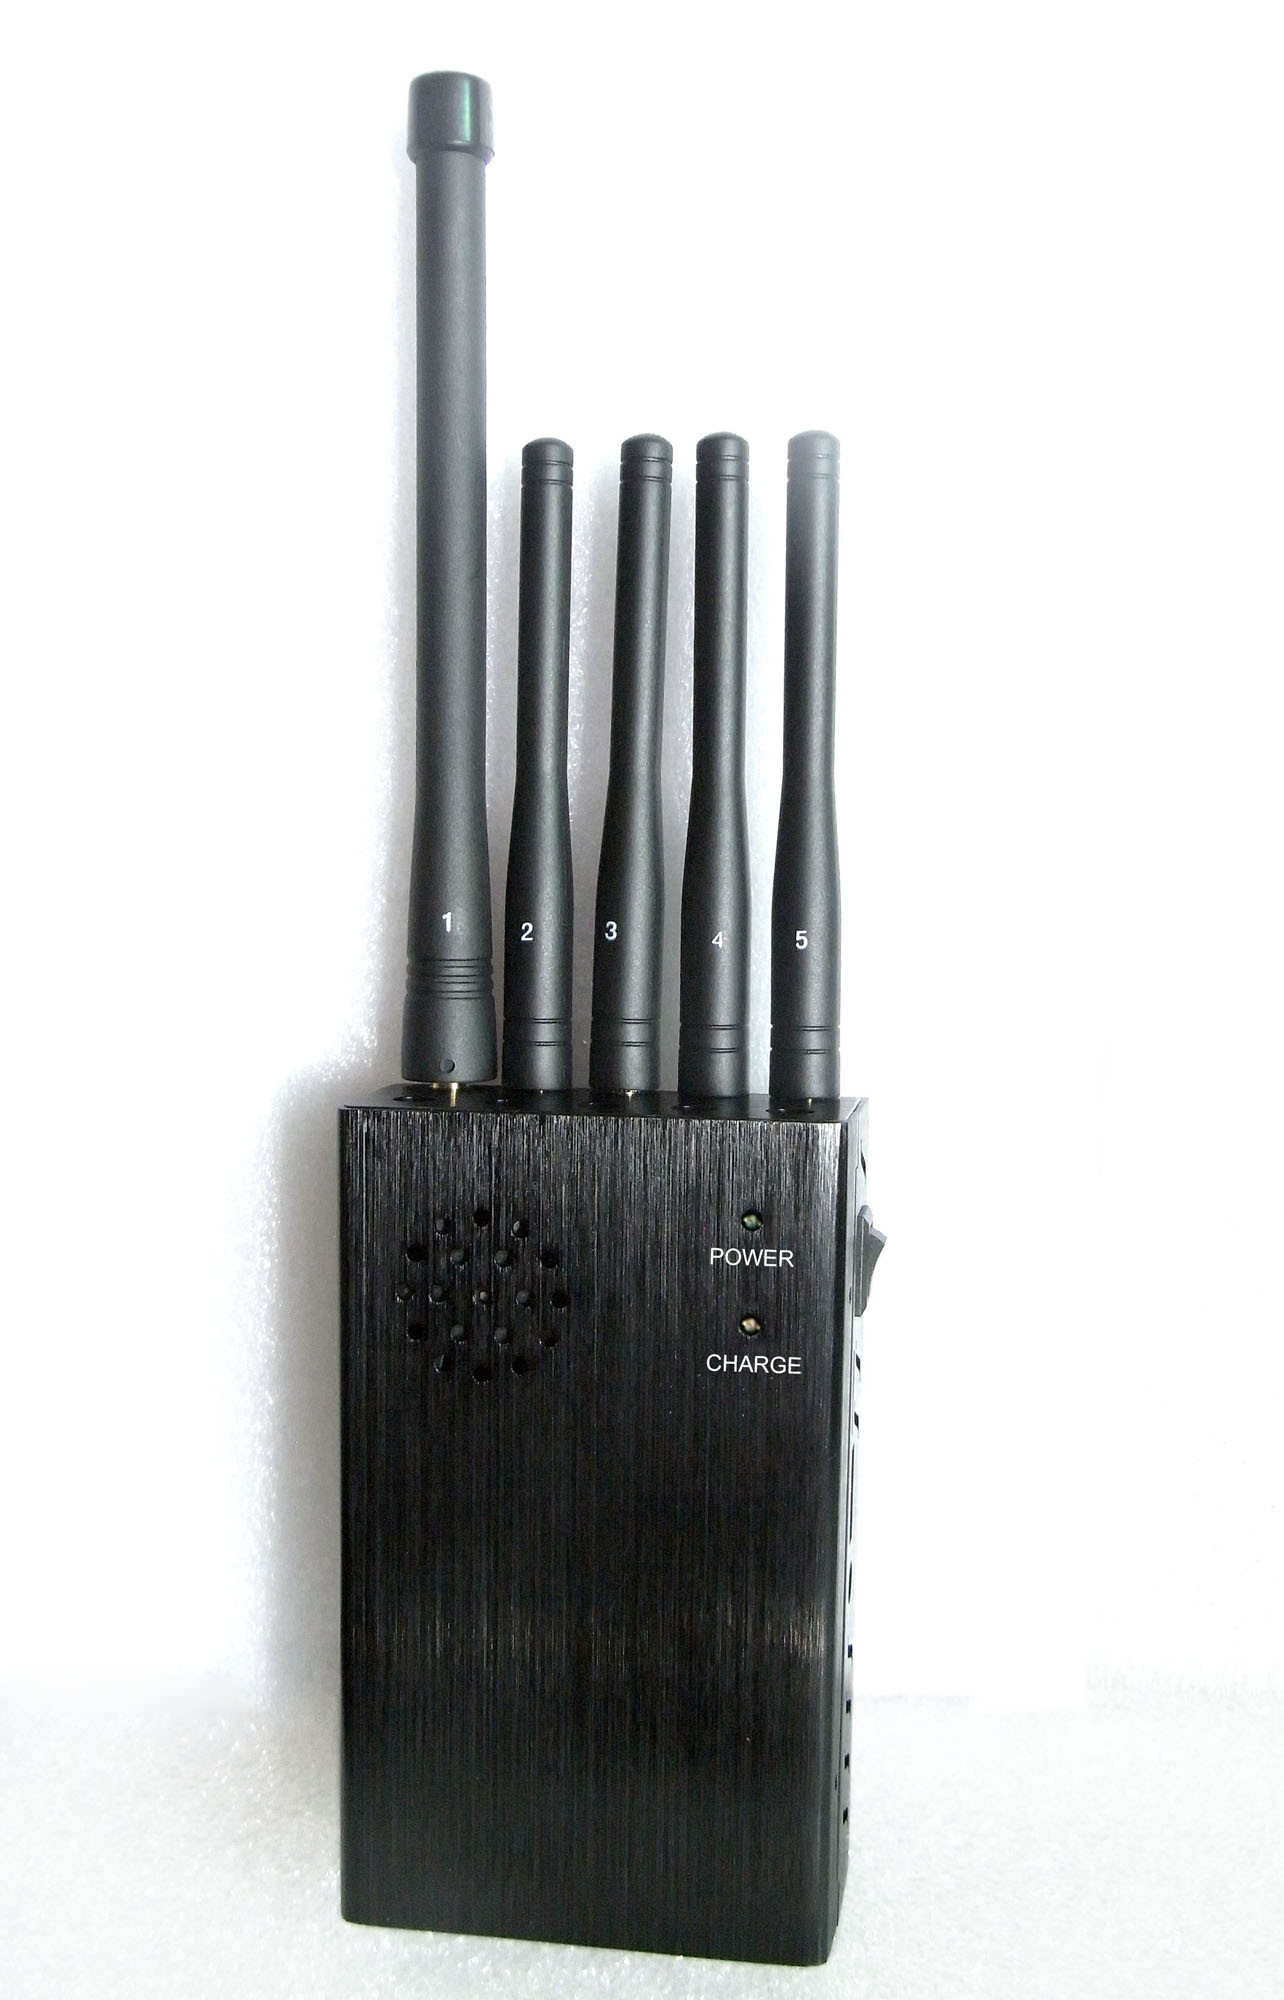 China New Handheld 5 Bands 4G Lte 4G Wimax Cell Phone Jammer 4G Jammer 3G Jammer, 5 Antennas Phone Jammer for GSM, CDMA, 3G, 4glte - China 5 Band Signal Blockers, Five Antennas Jammers